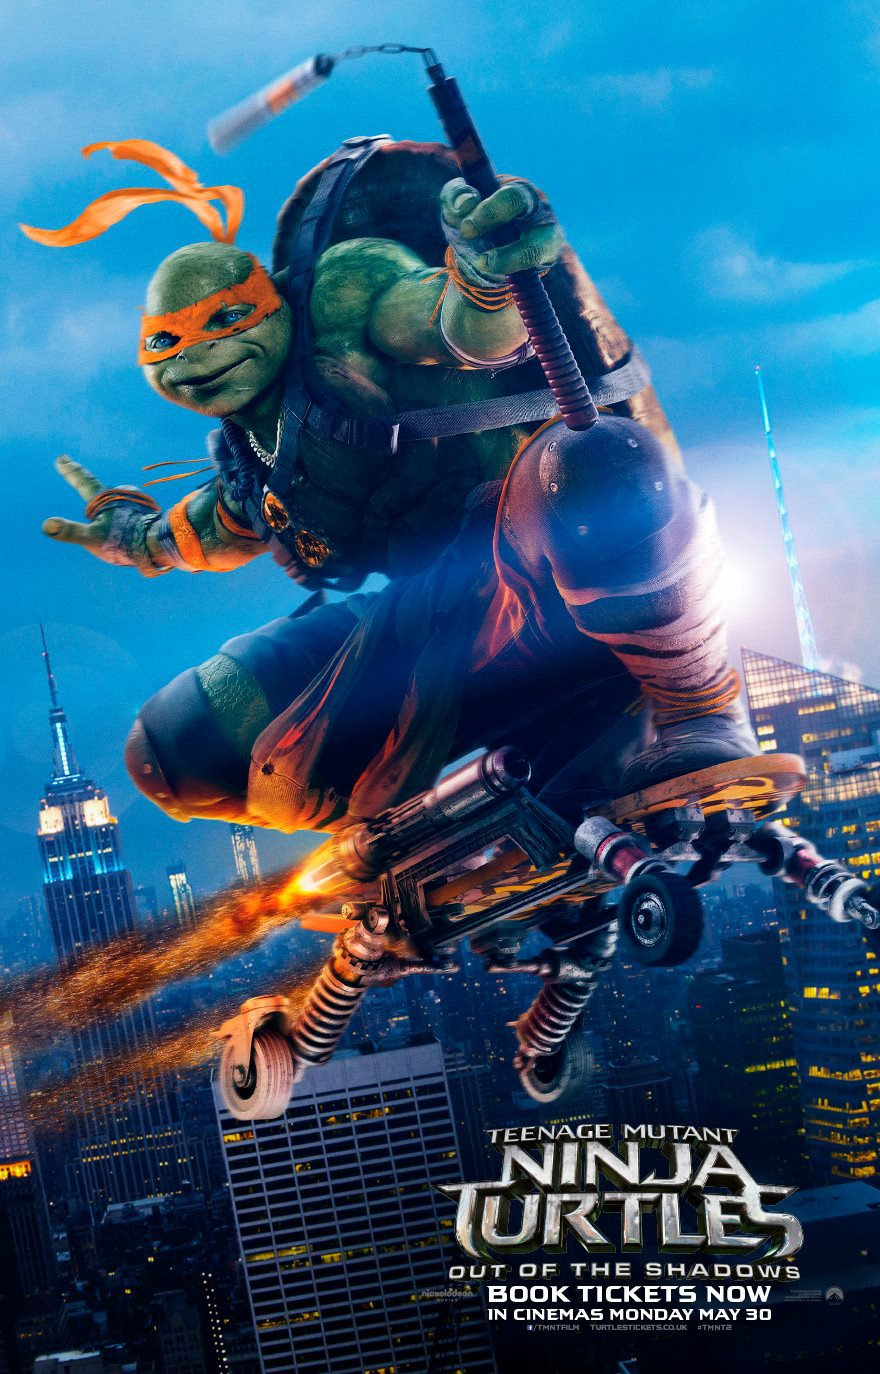 Michelangelo Paramount Tmntpedia Fandom Powered By Wikia